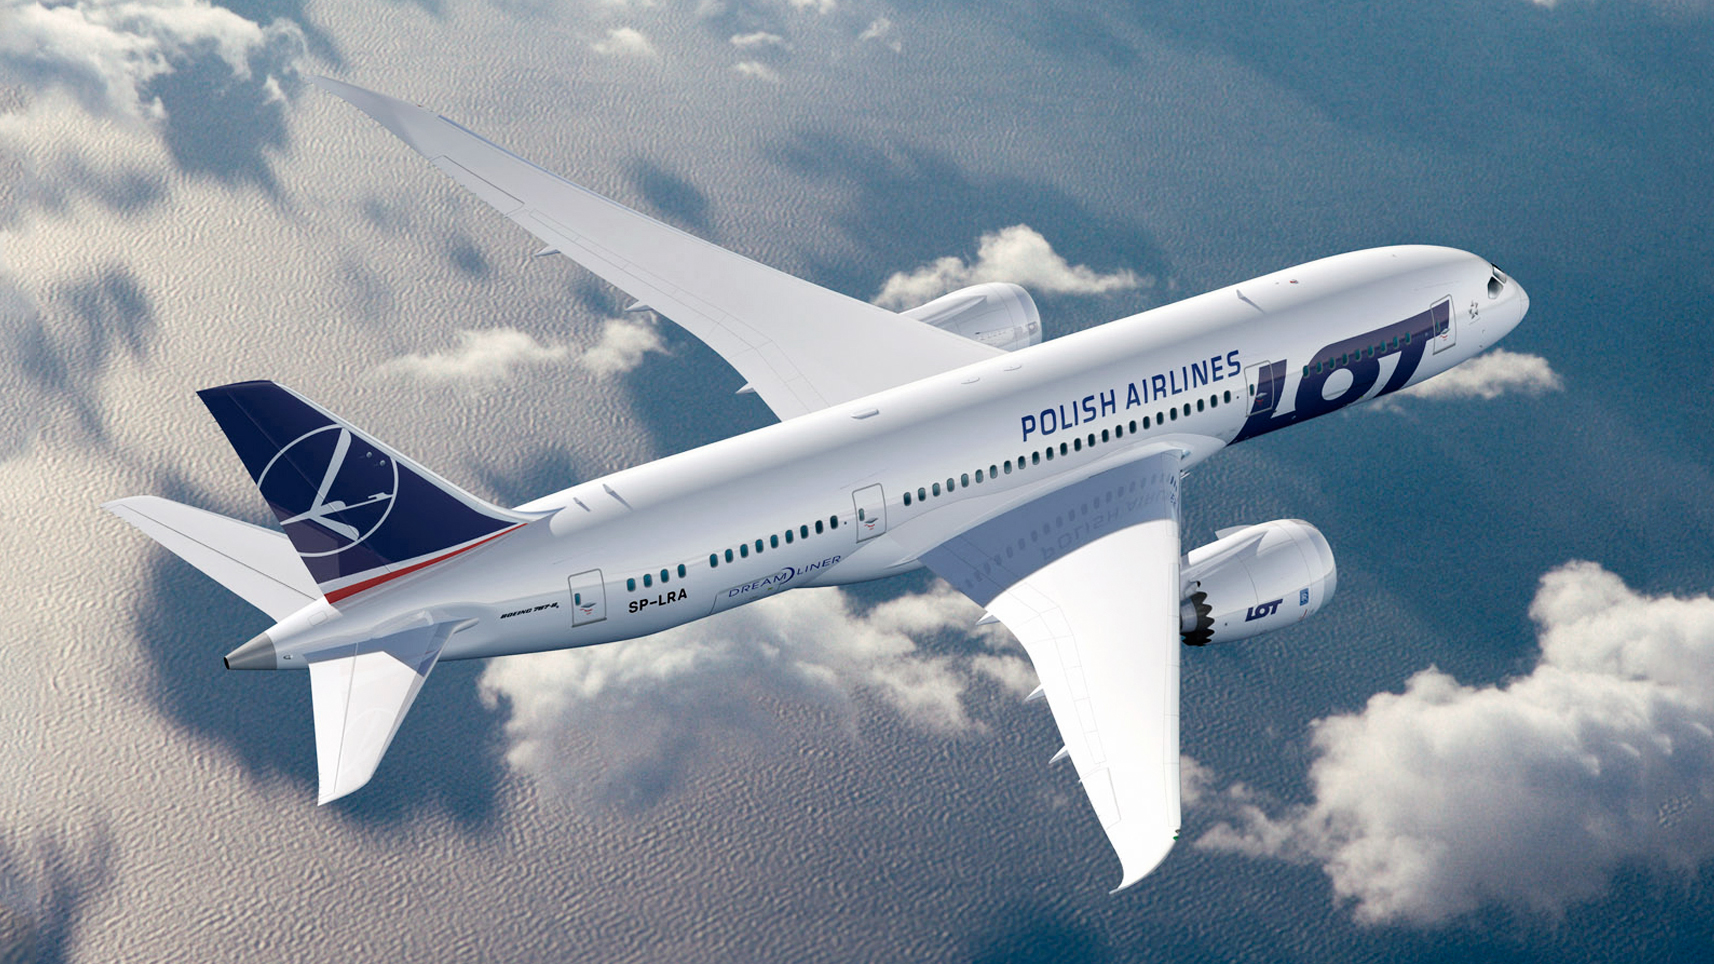 lot-polish-airlines-1